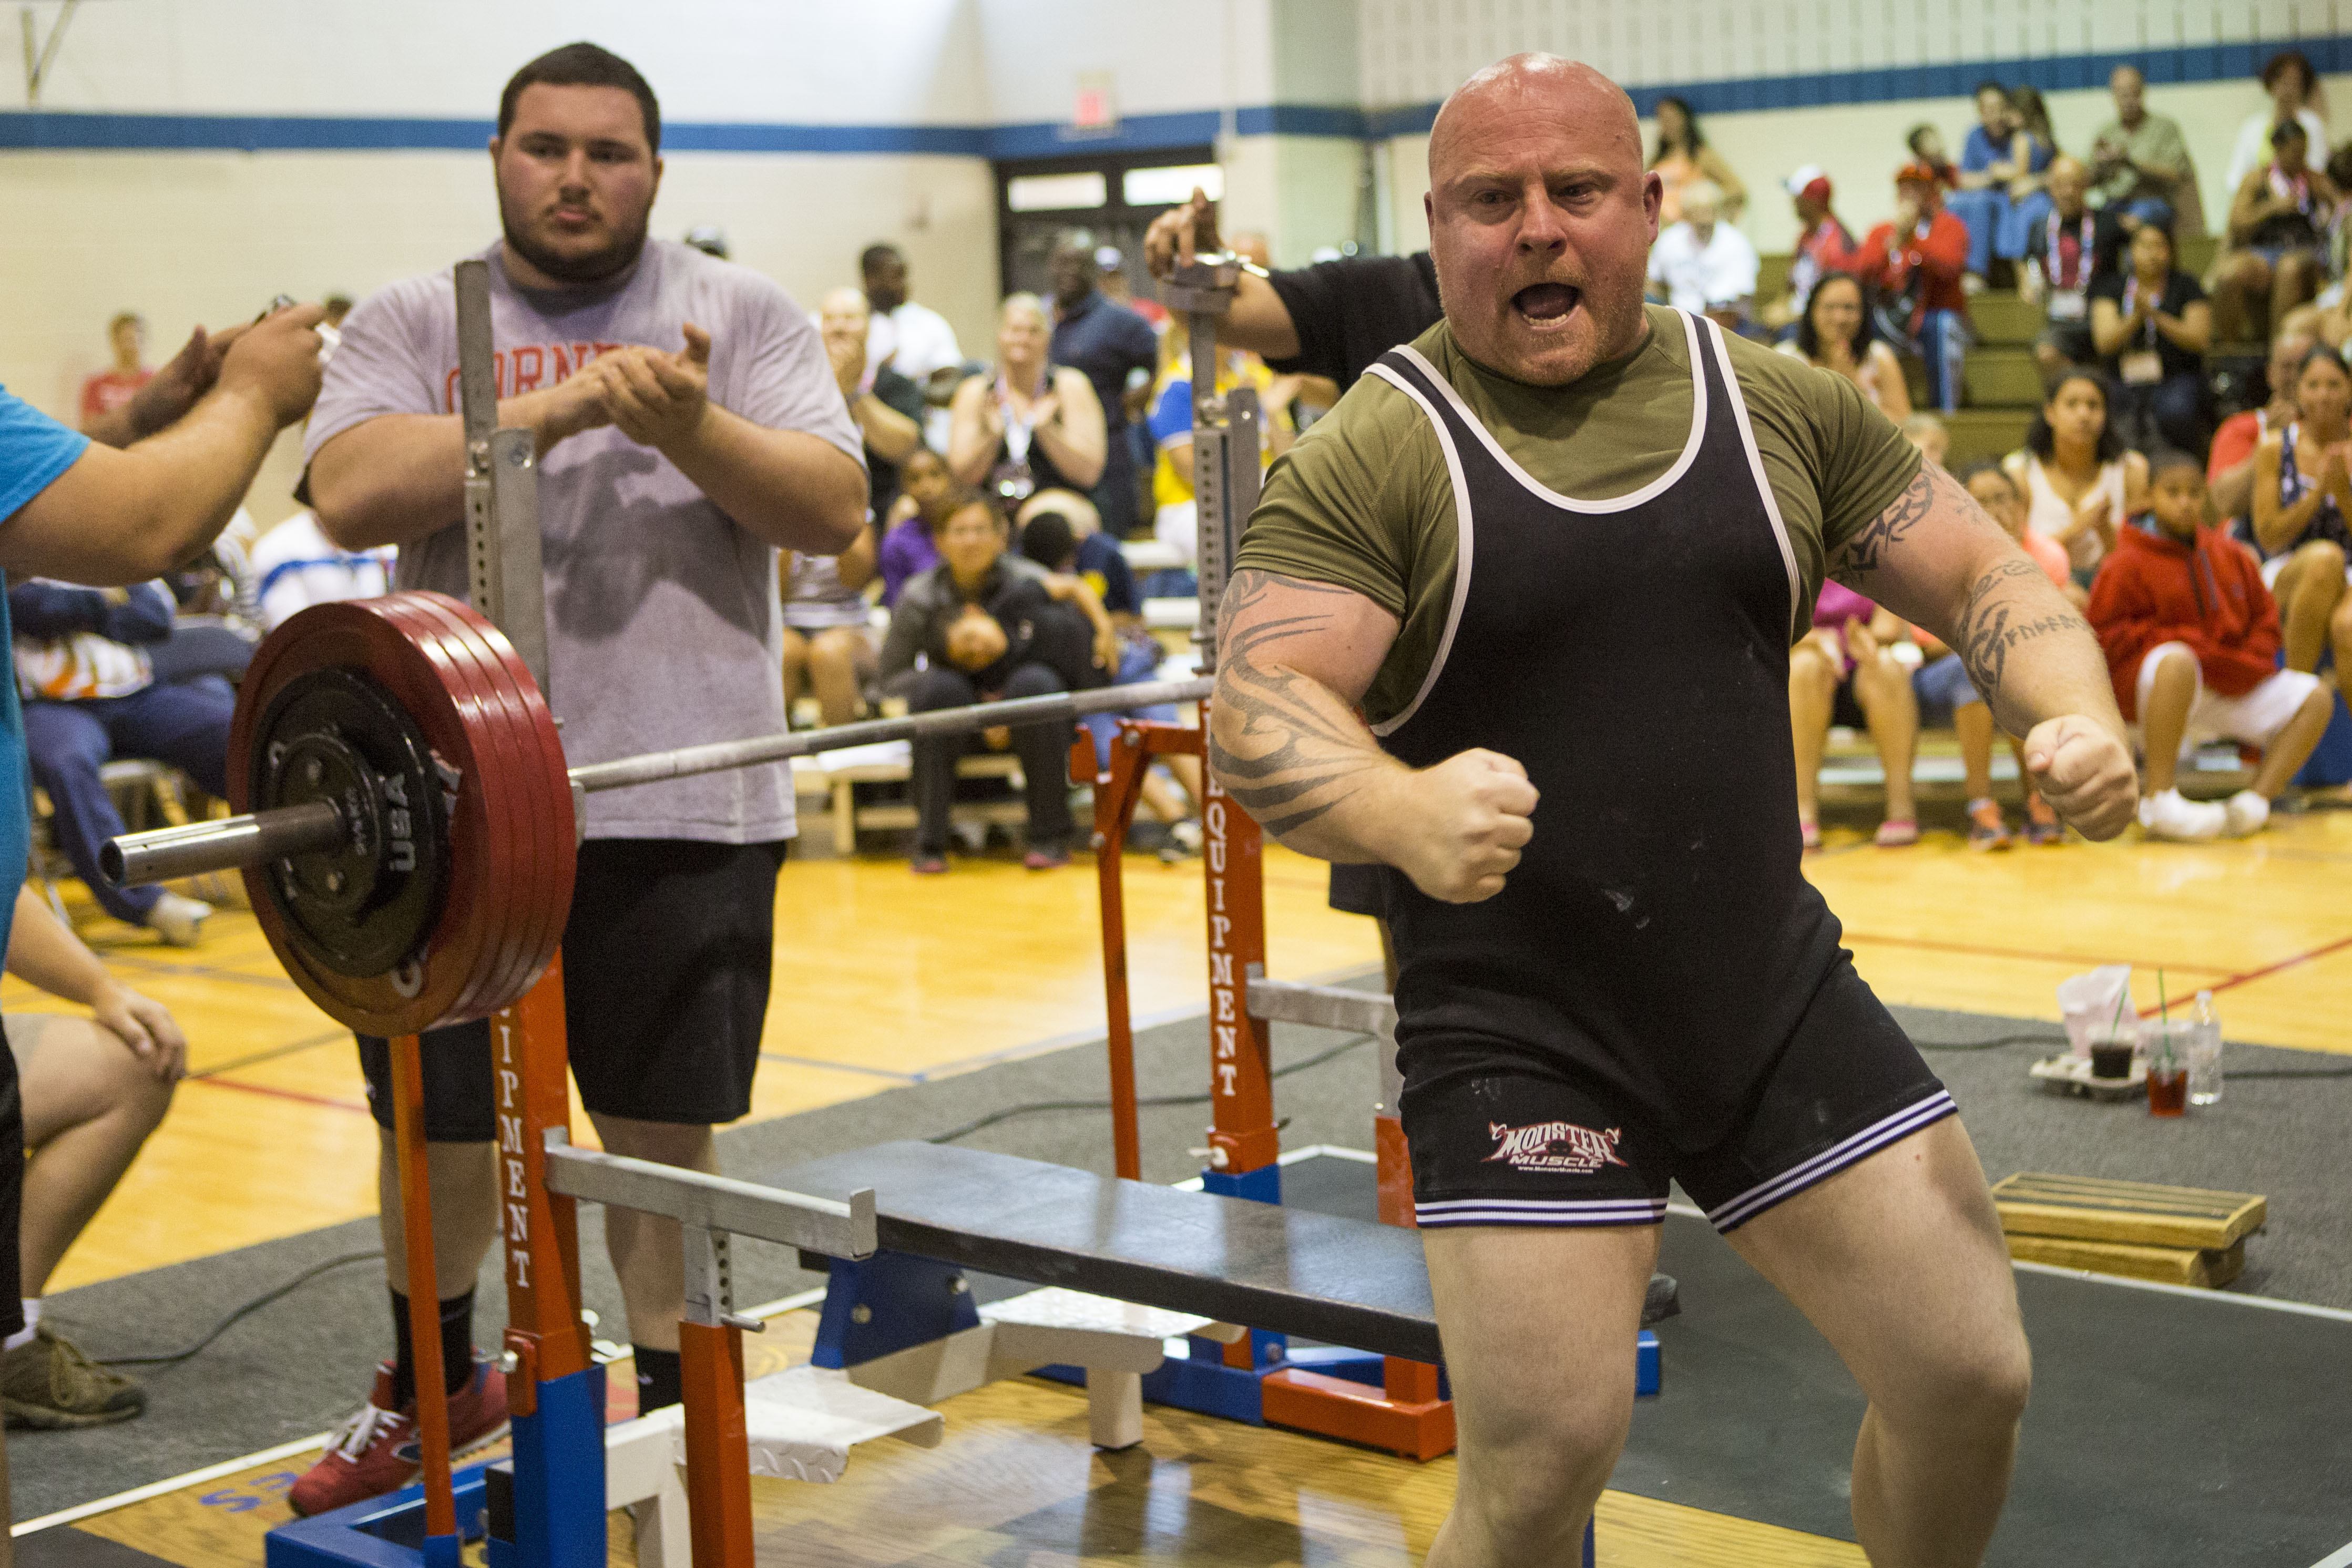 Watch How to break a weightlifting world record video